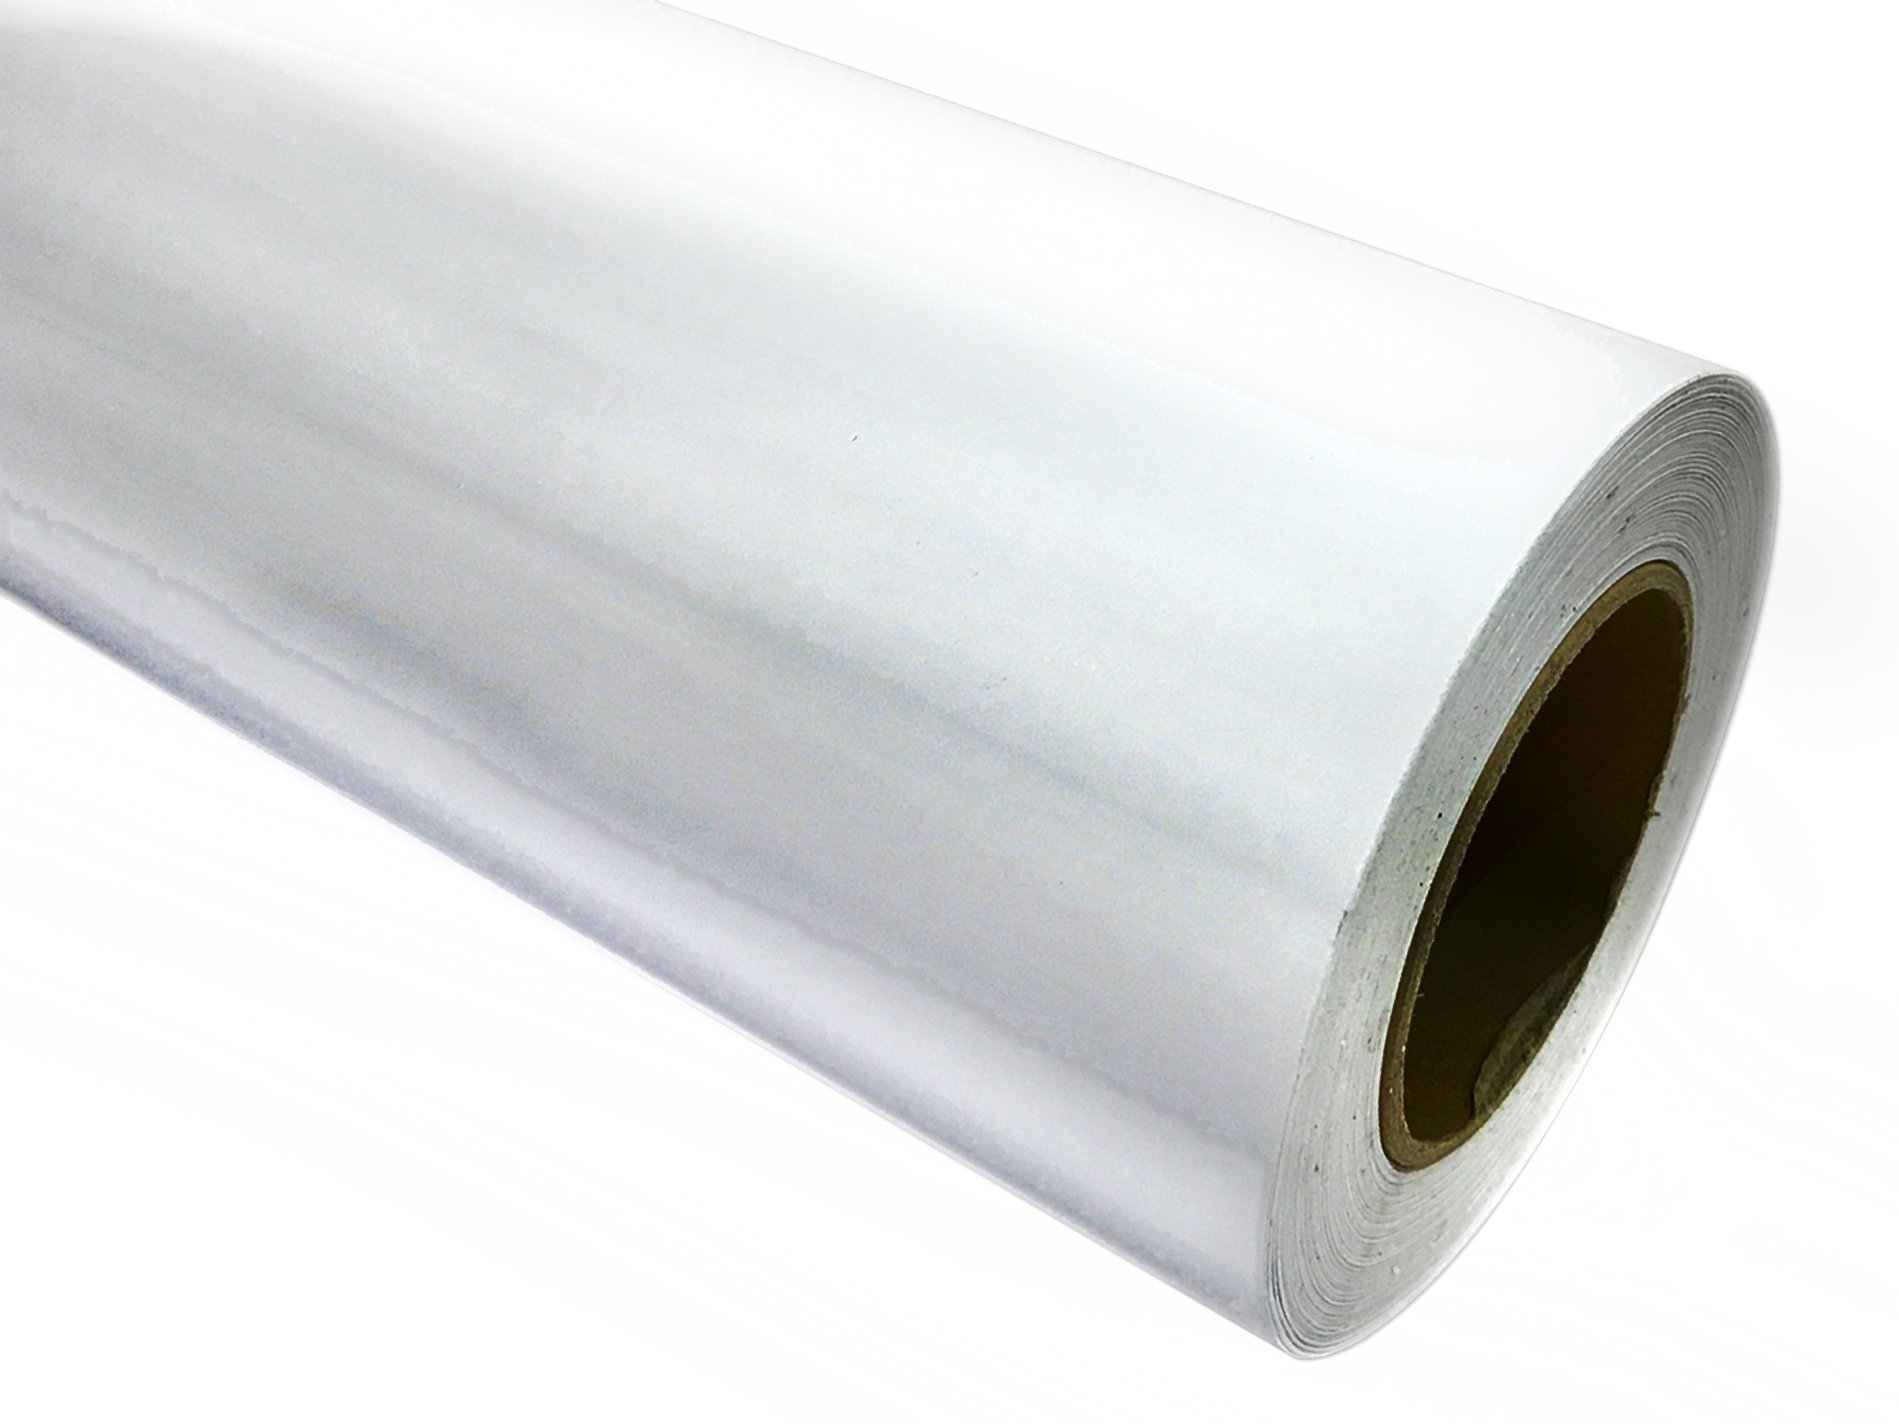 24'' x 150 ft ( 50 yards) Roll of Clear Repositionable Adhesive-Backed Vinyl for Craft Cutters, Punches and Vinyl Sign Cutters